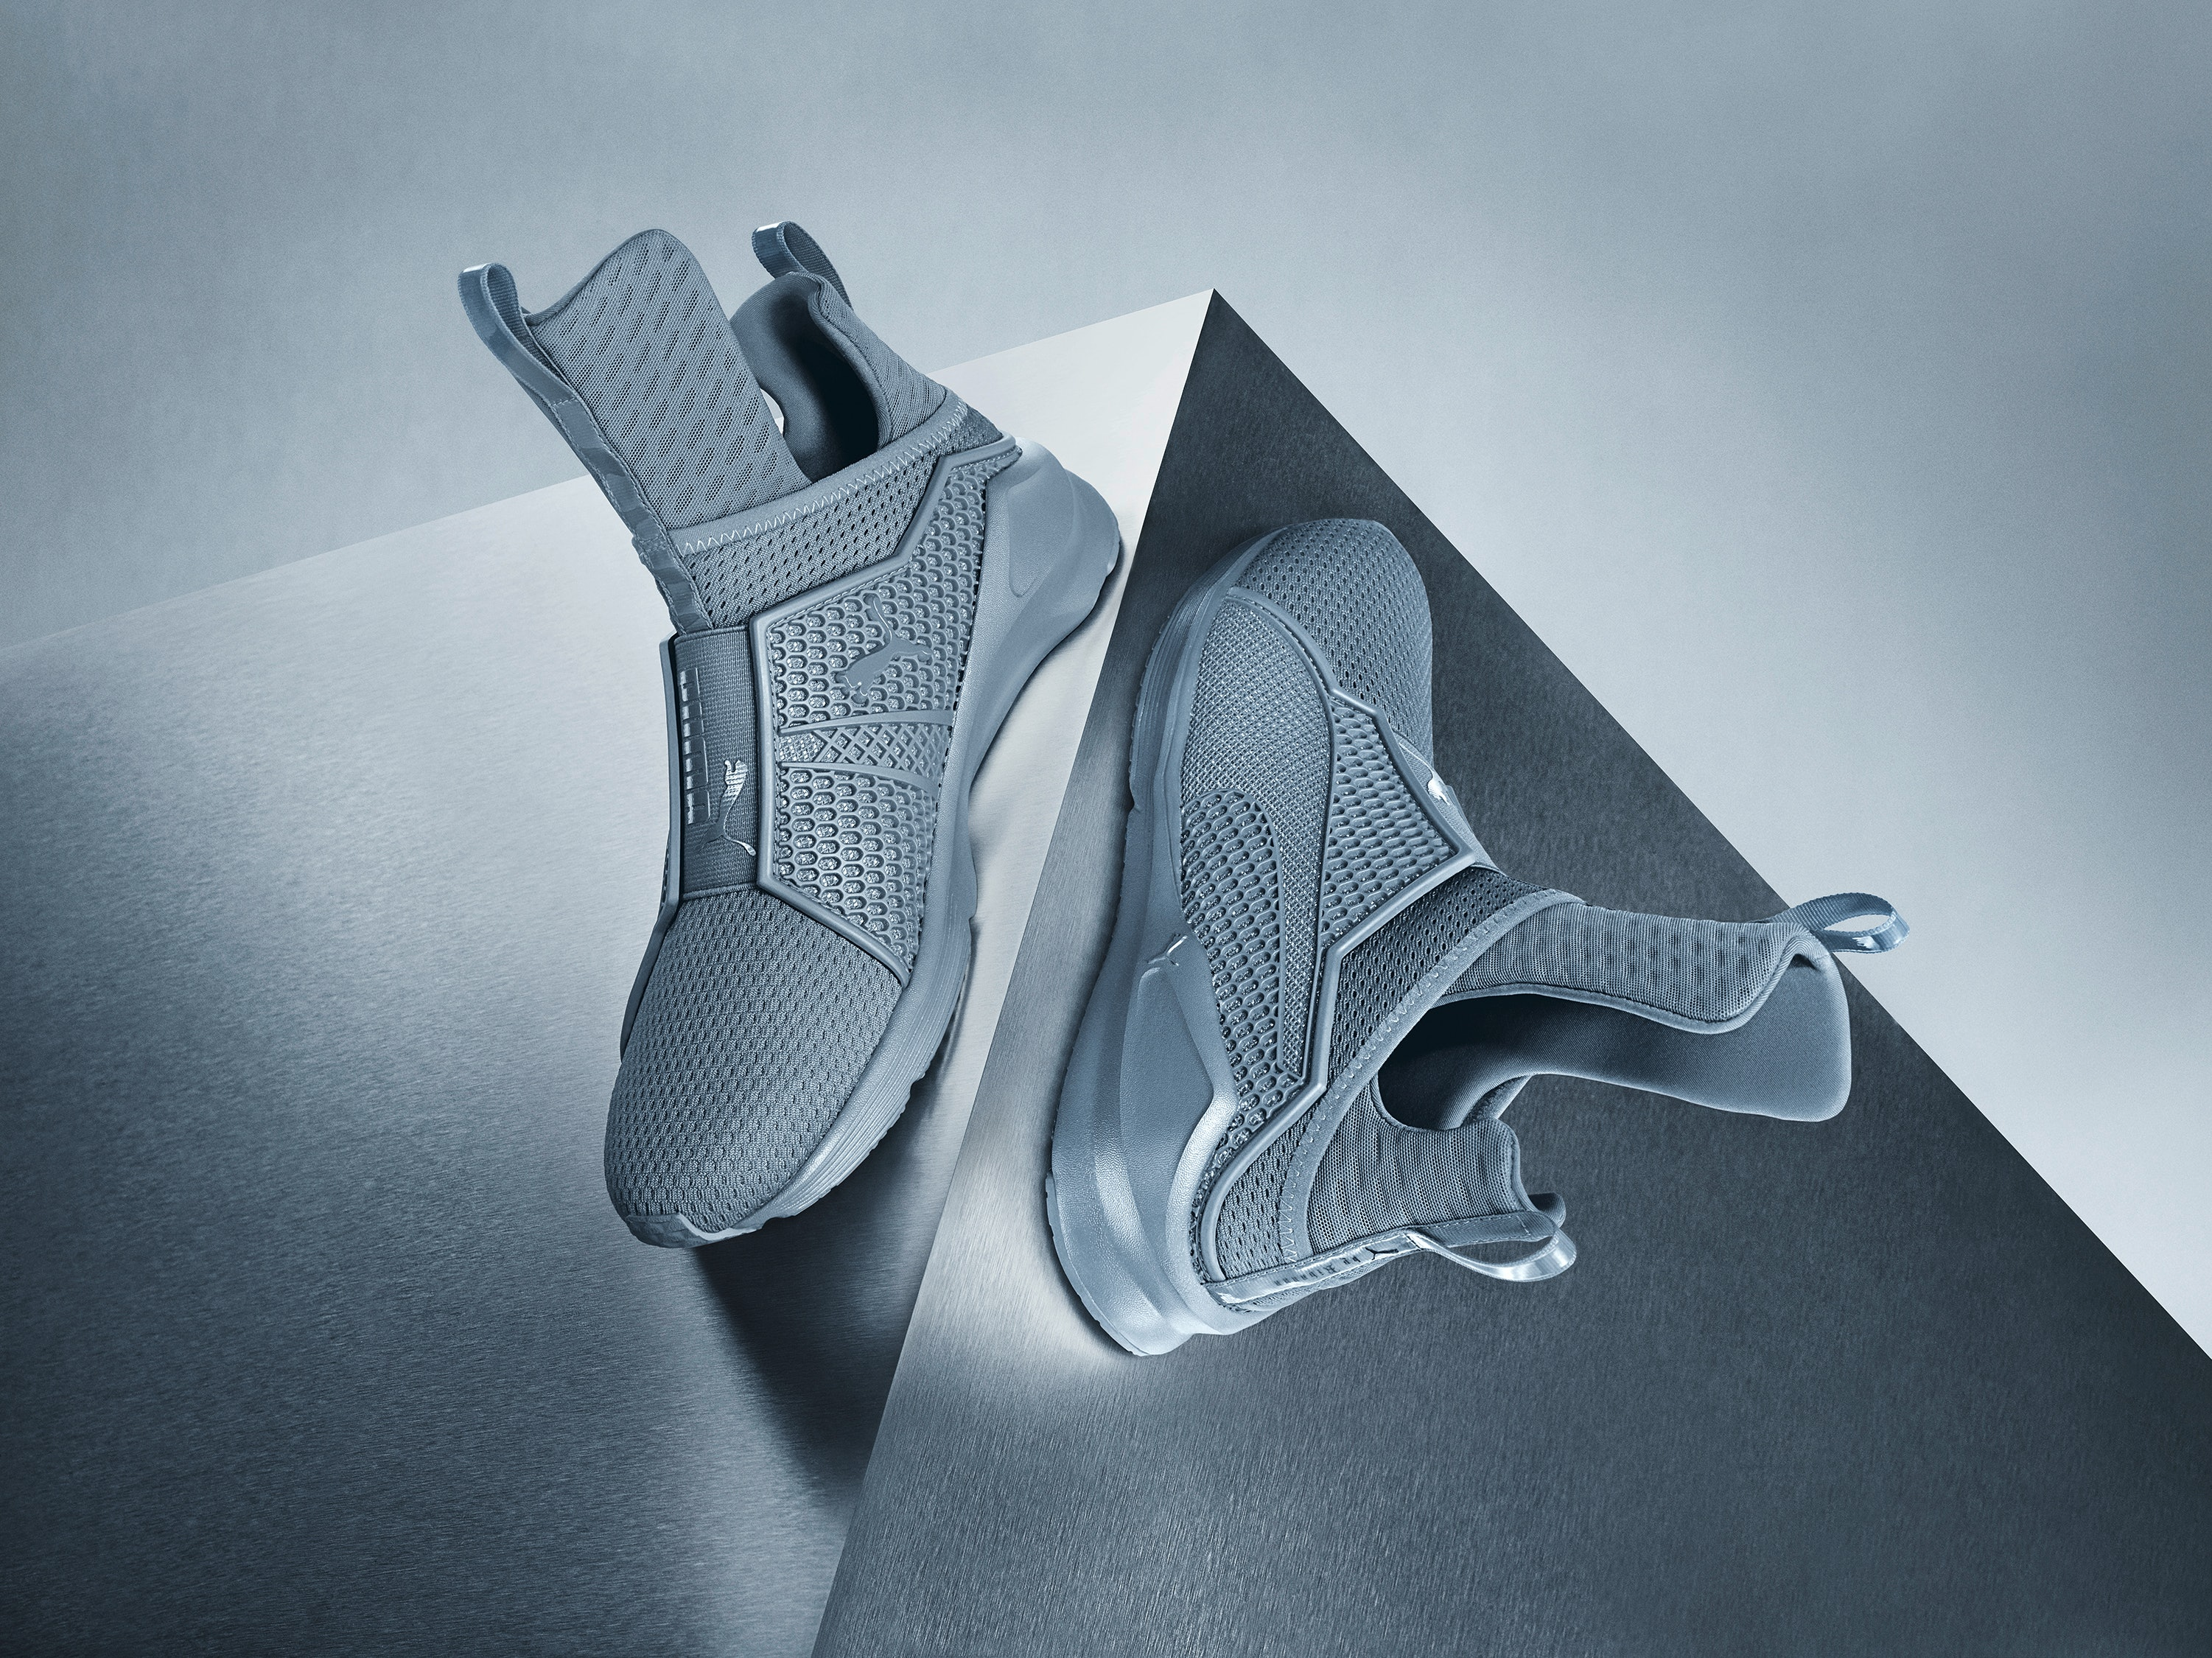 52fe4597999 How Much Are The Grey Rihanna x Puma Fenty Trainers  Here s What You Need  To Know